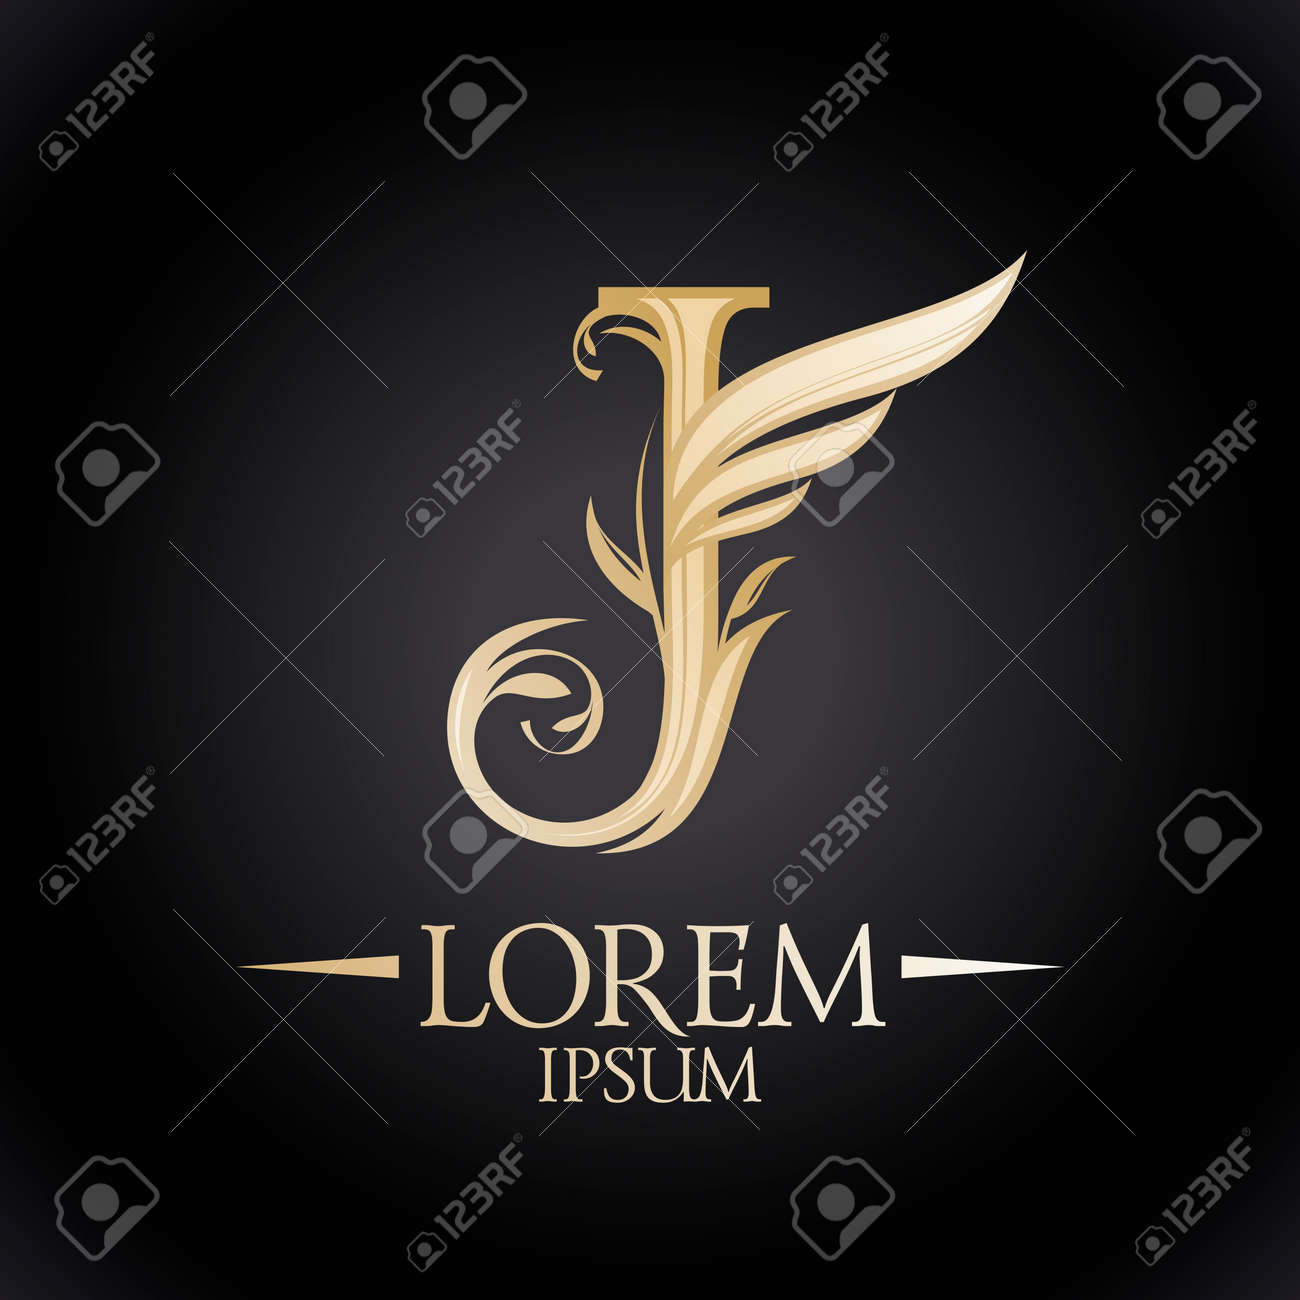 Golden Floral J Letter Symbol Icon With Wing And Curly Leaves